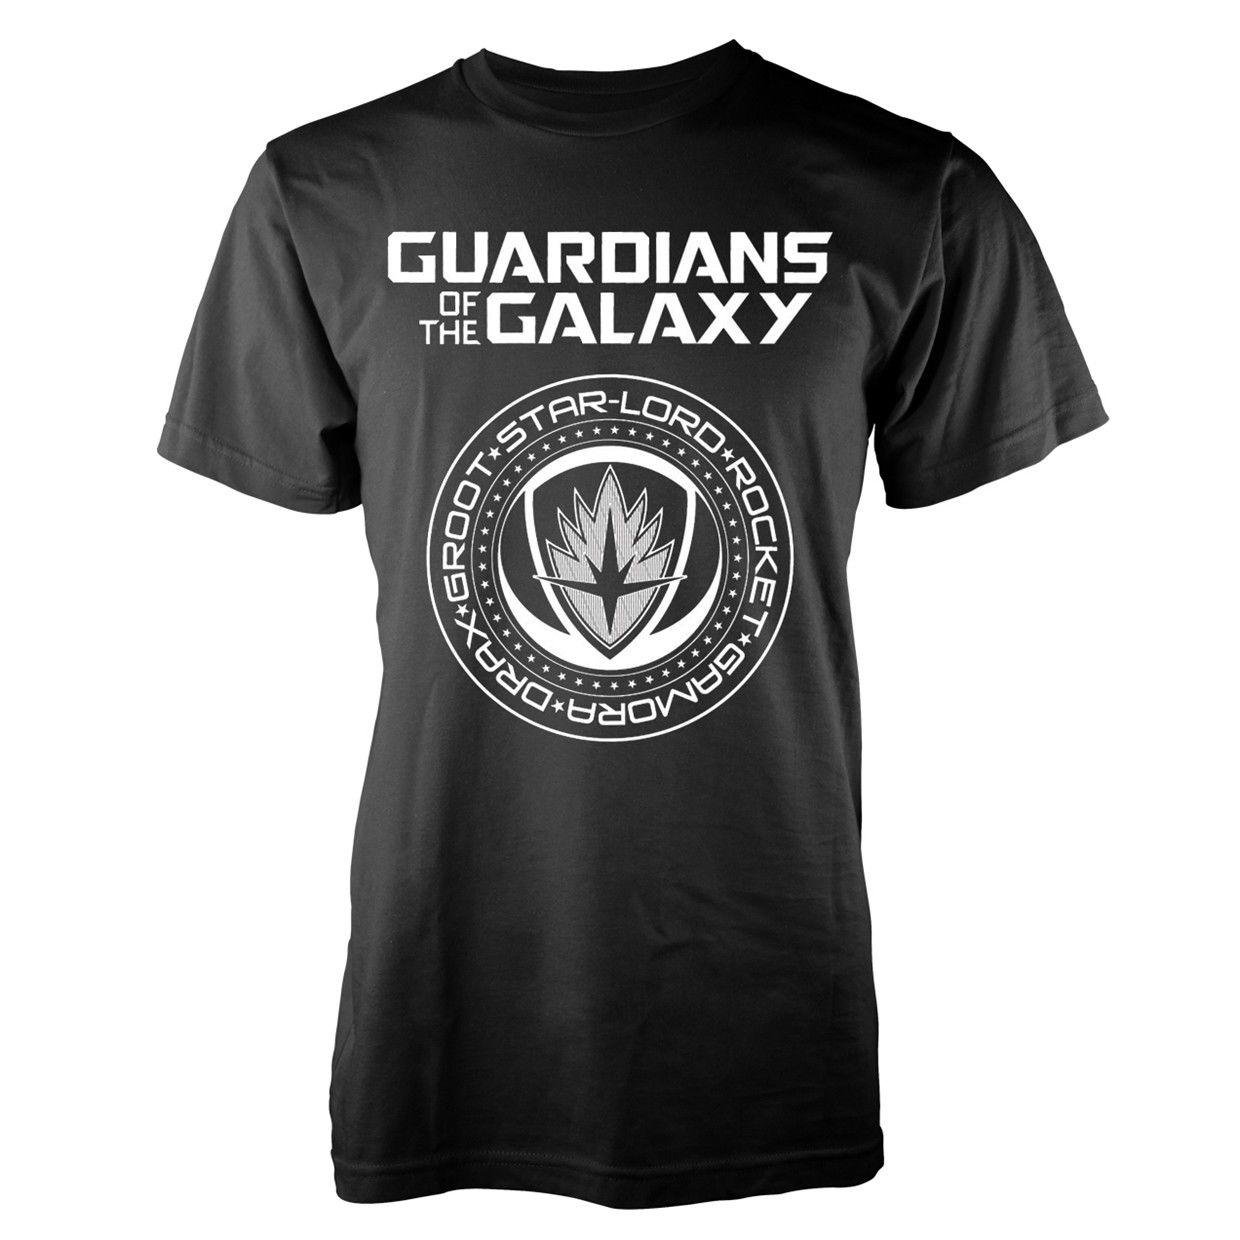 Guardians of The Galaxy 2 Logo Licensed Tee T-Shirt Men New 2018 Summer Fashion O-Neck Oversize Style Tee Shirts Styles